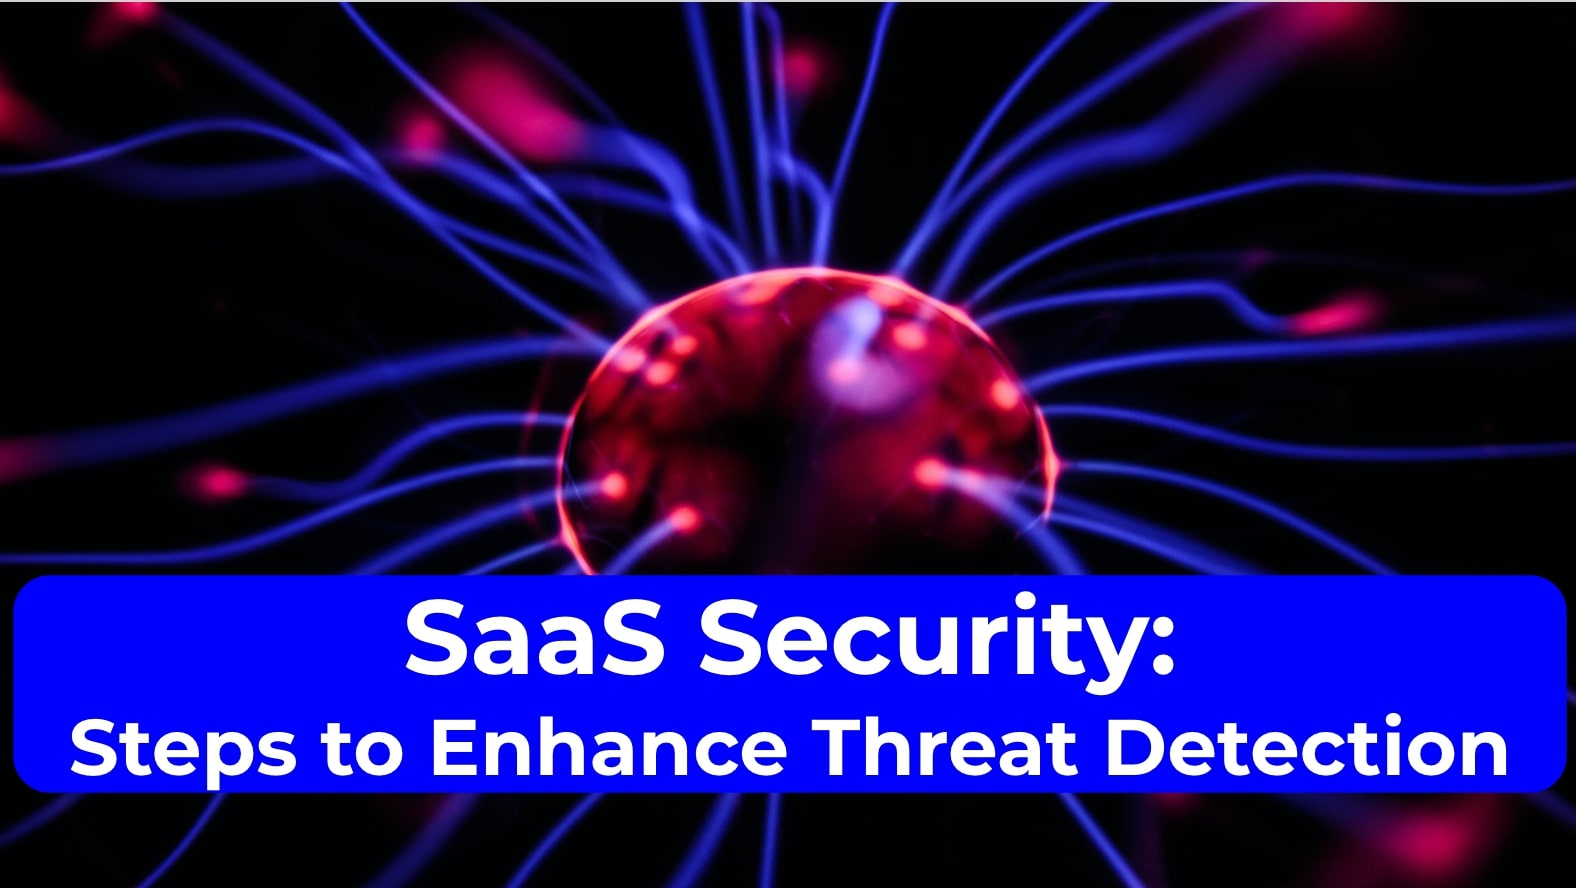 SaaS Security: Steps to Enhance Threat Detection